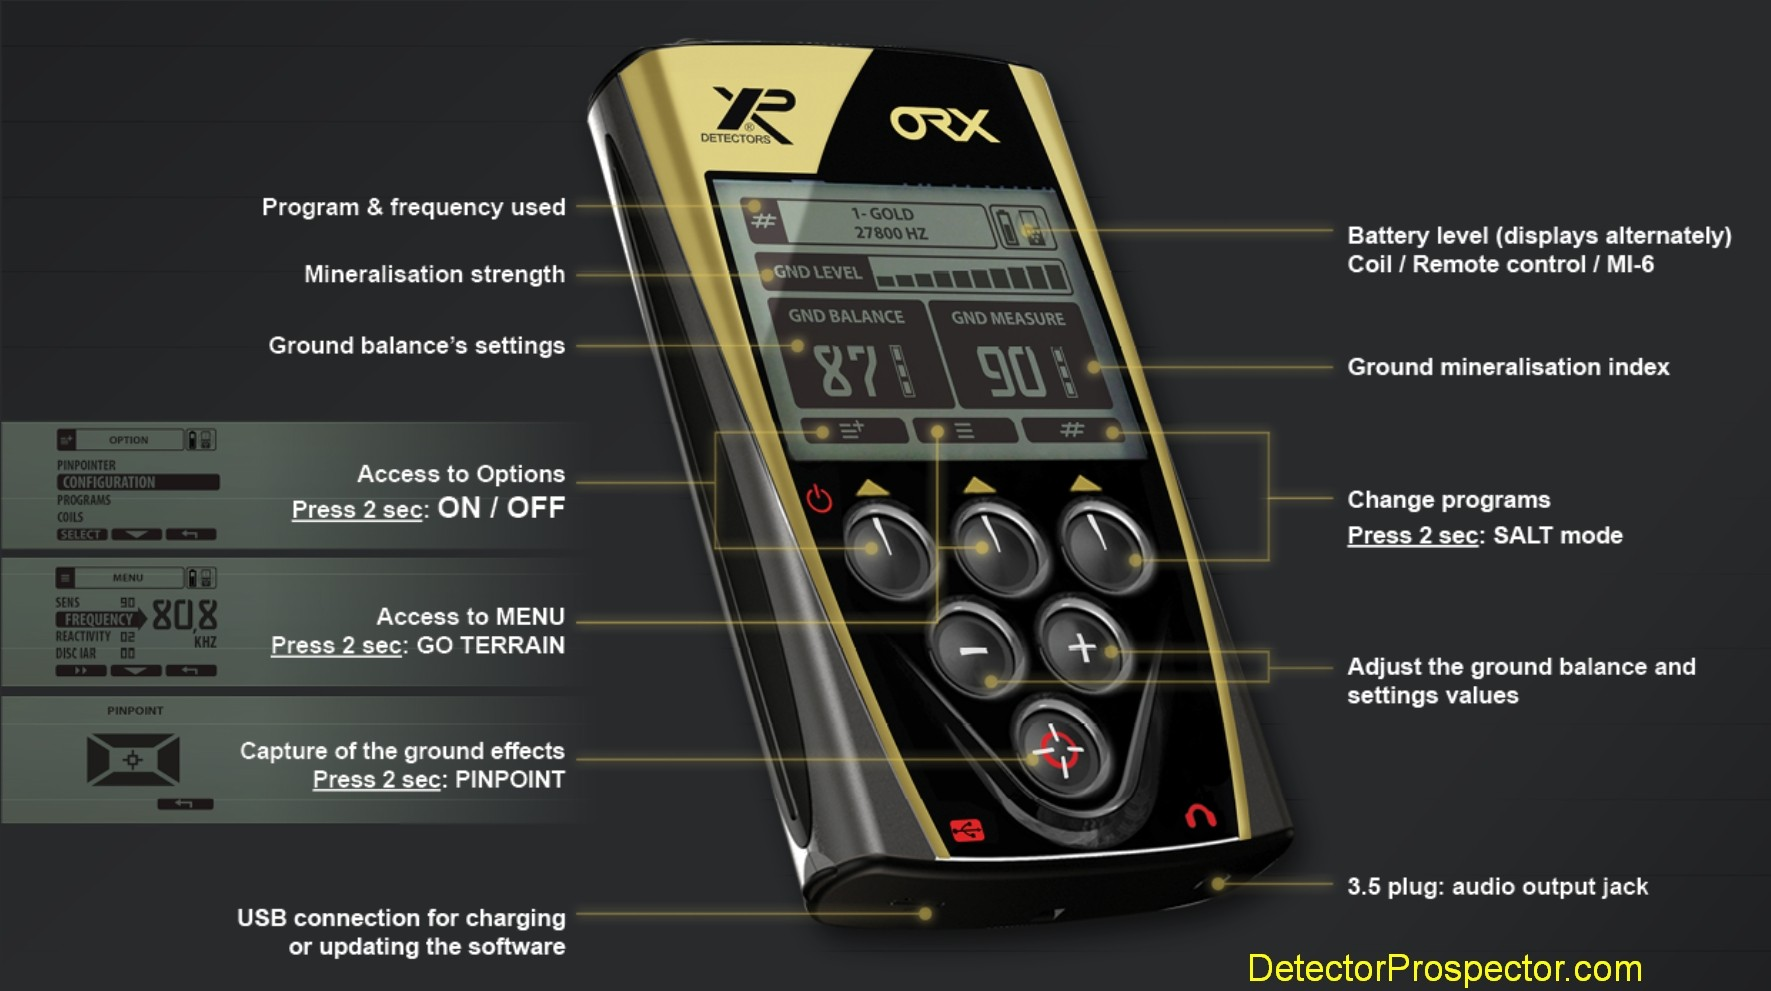 new-xp-orx-metal-detector-gold-nugget-se